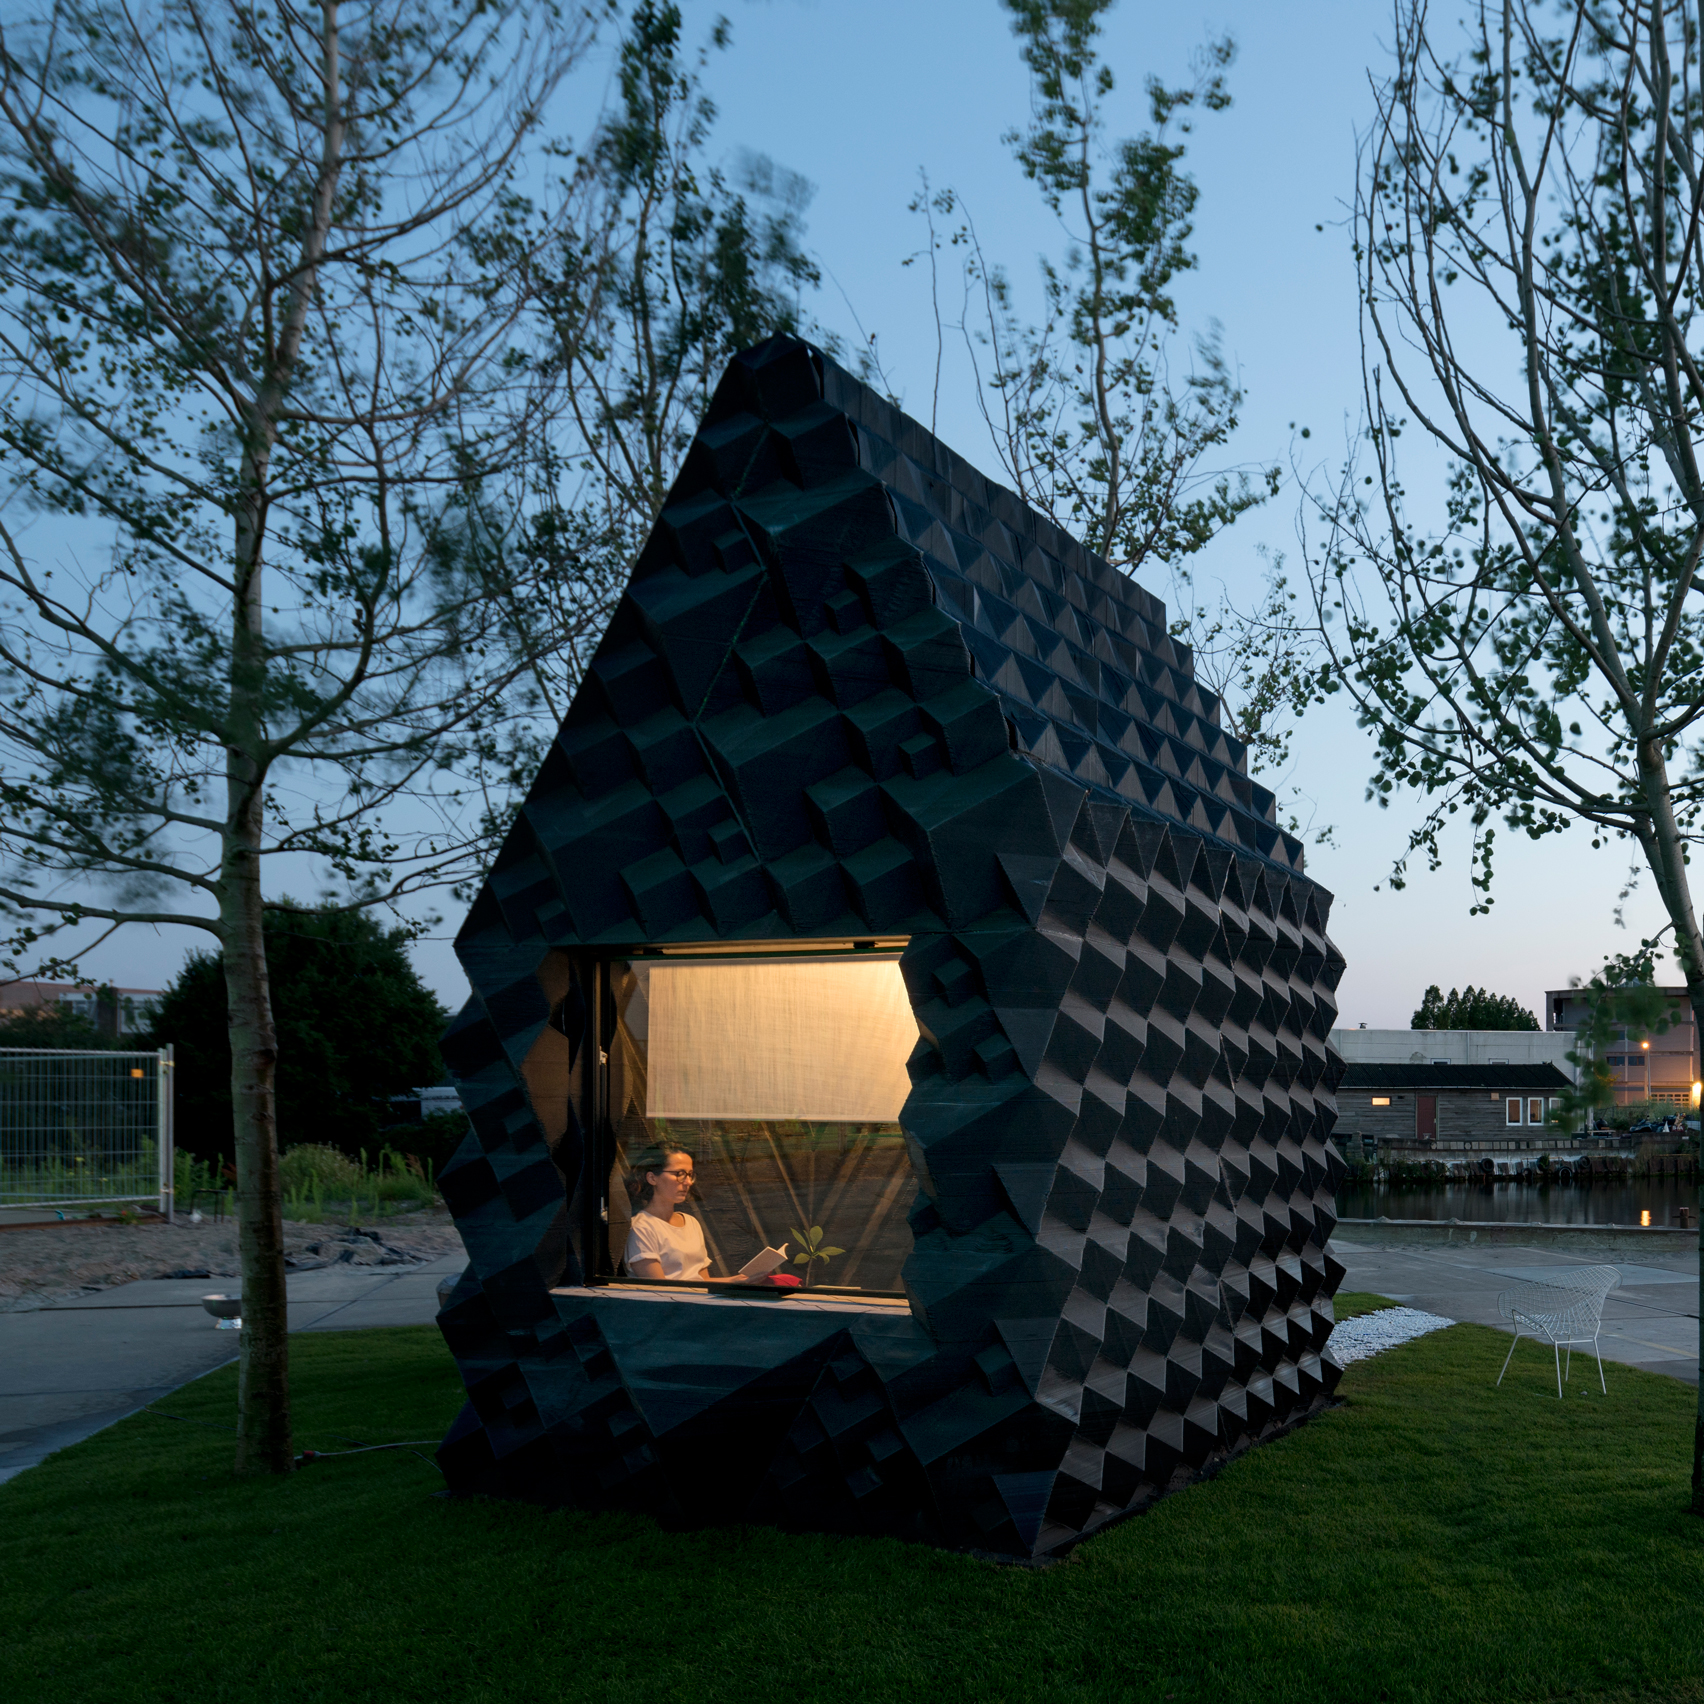 10 of the best micro houses of minuscule proportions